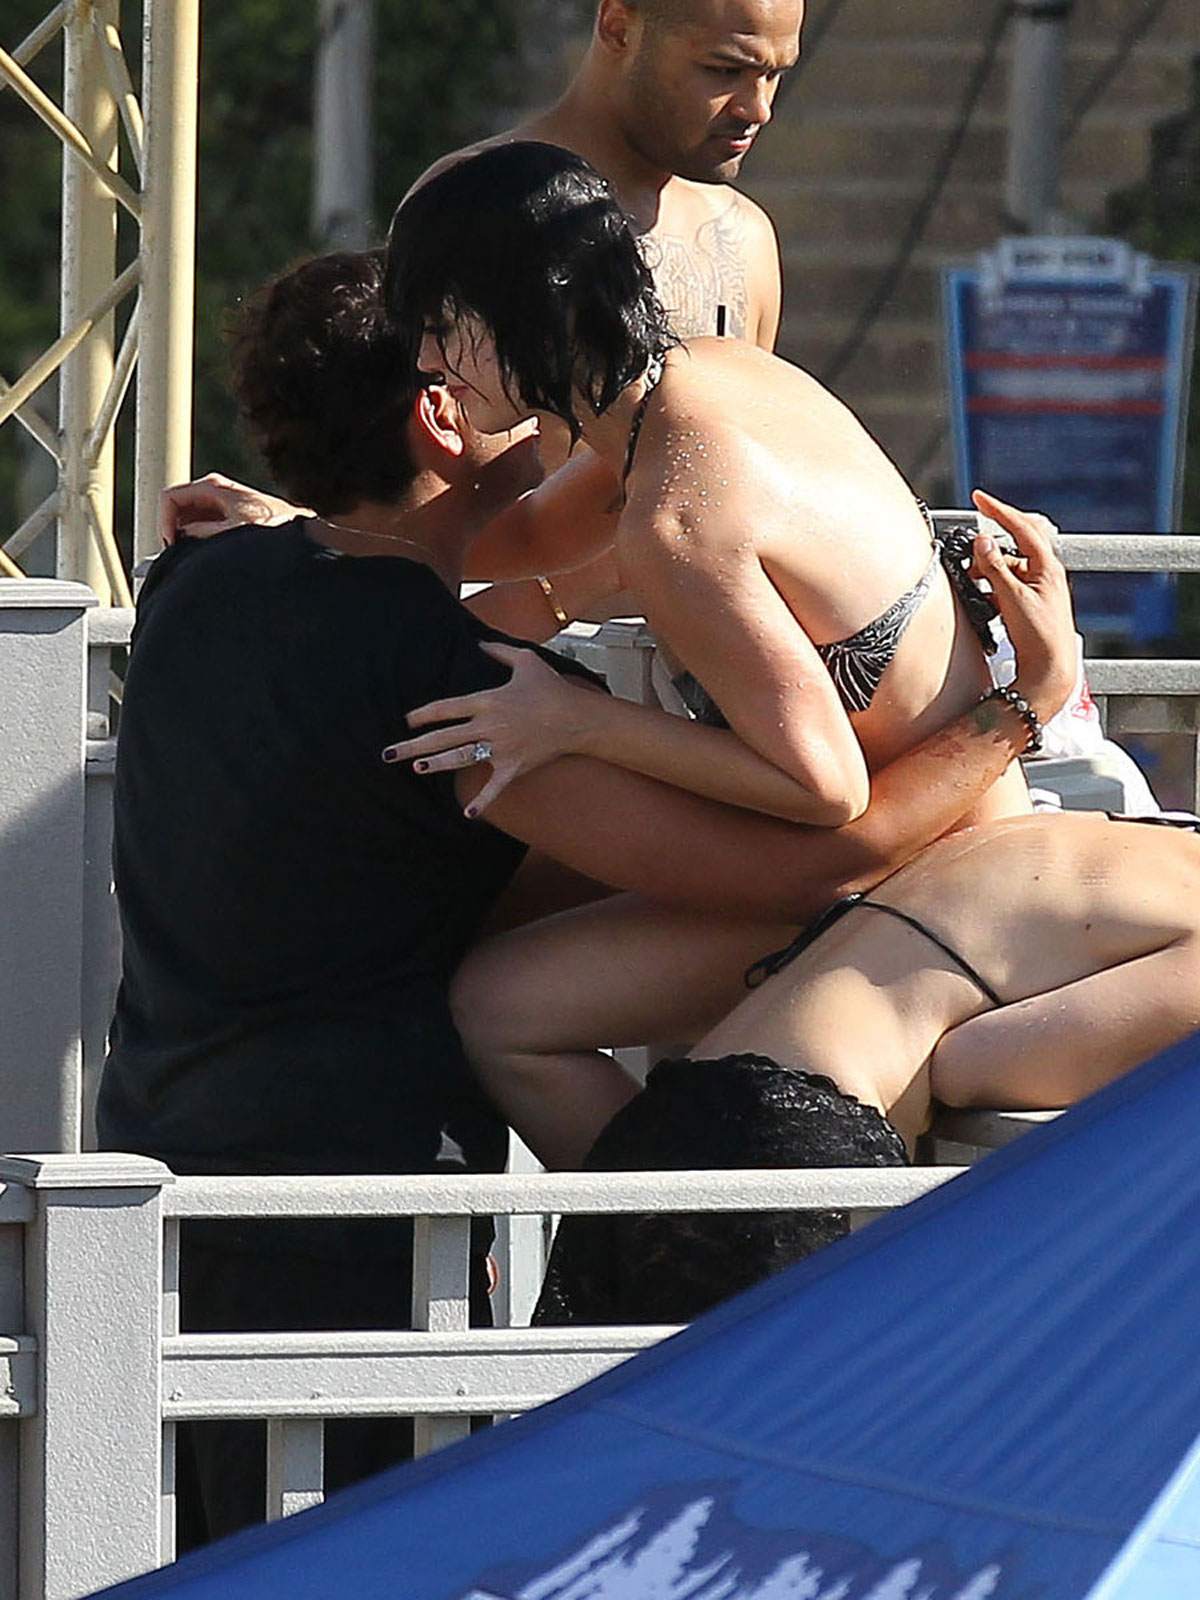 KATY PERRY Bikini Bottoms Fall Down at the Water Park in San Dimas